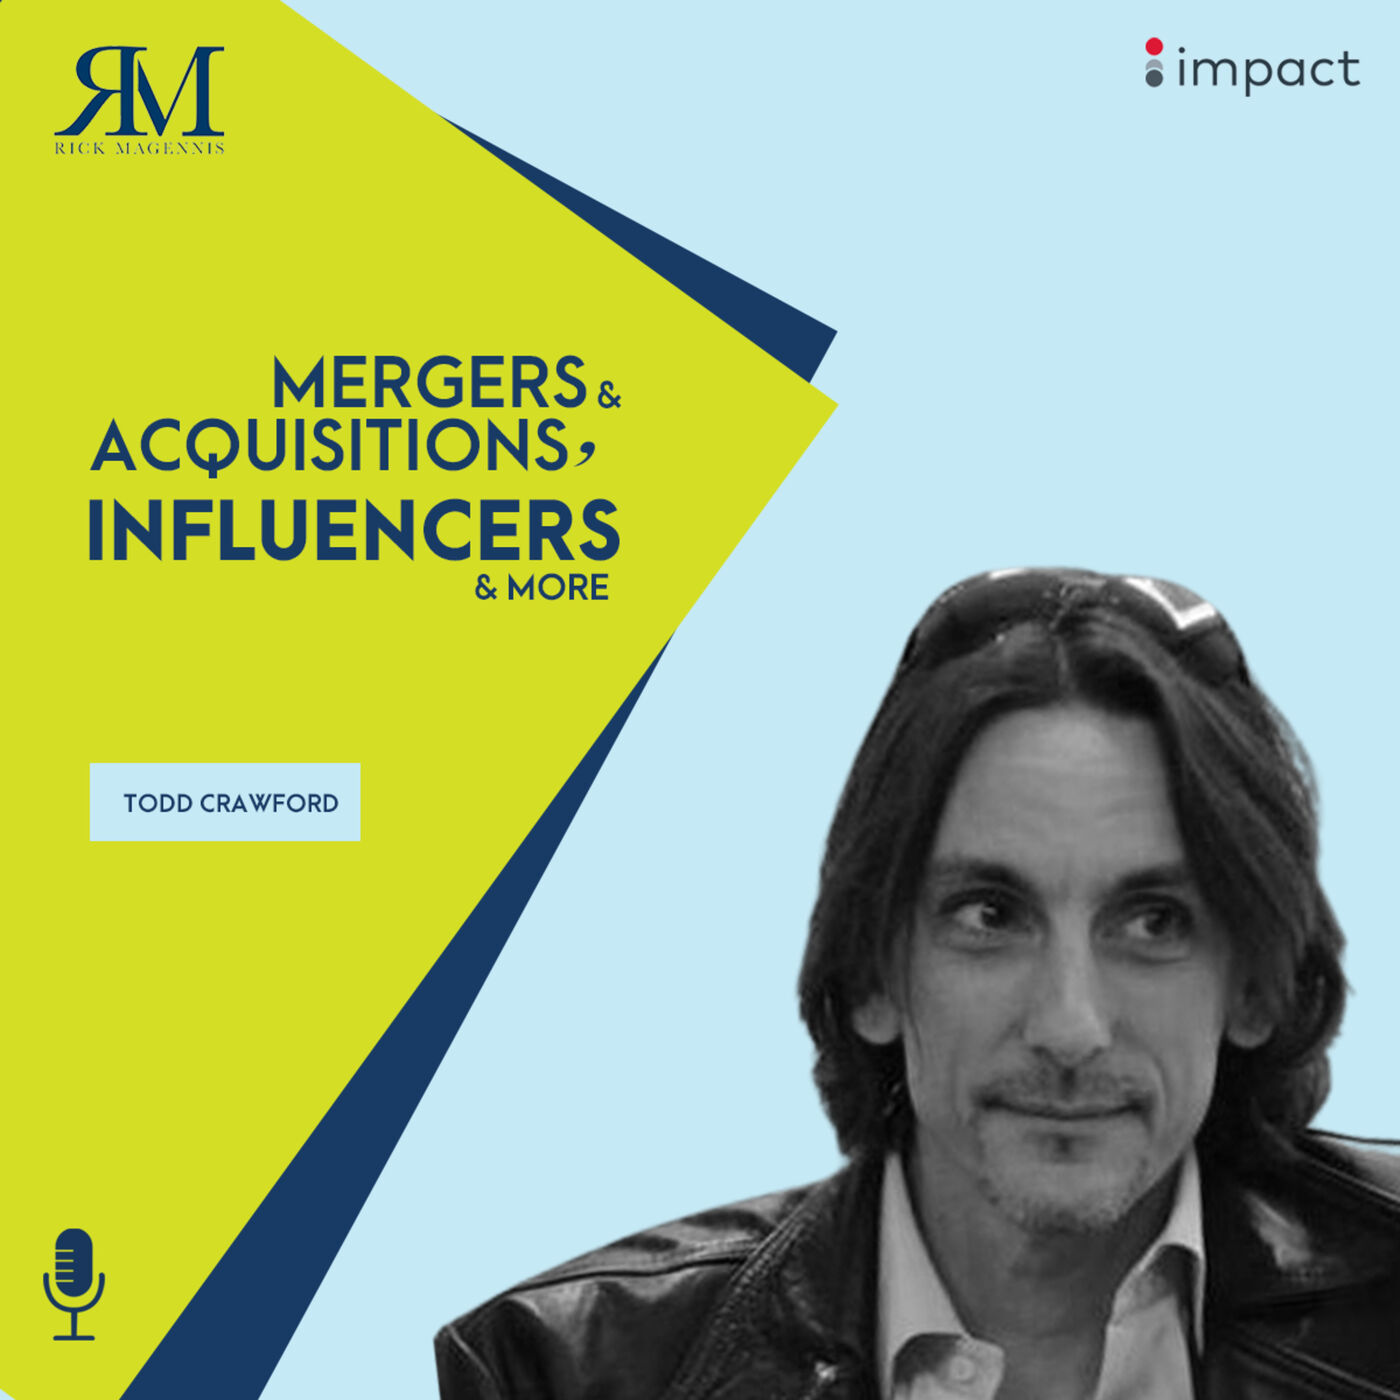 Mergers & Acquisitions, Influencers, and More!